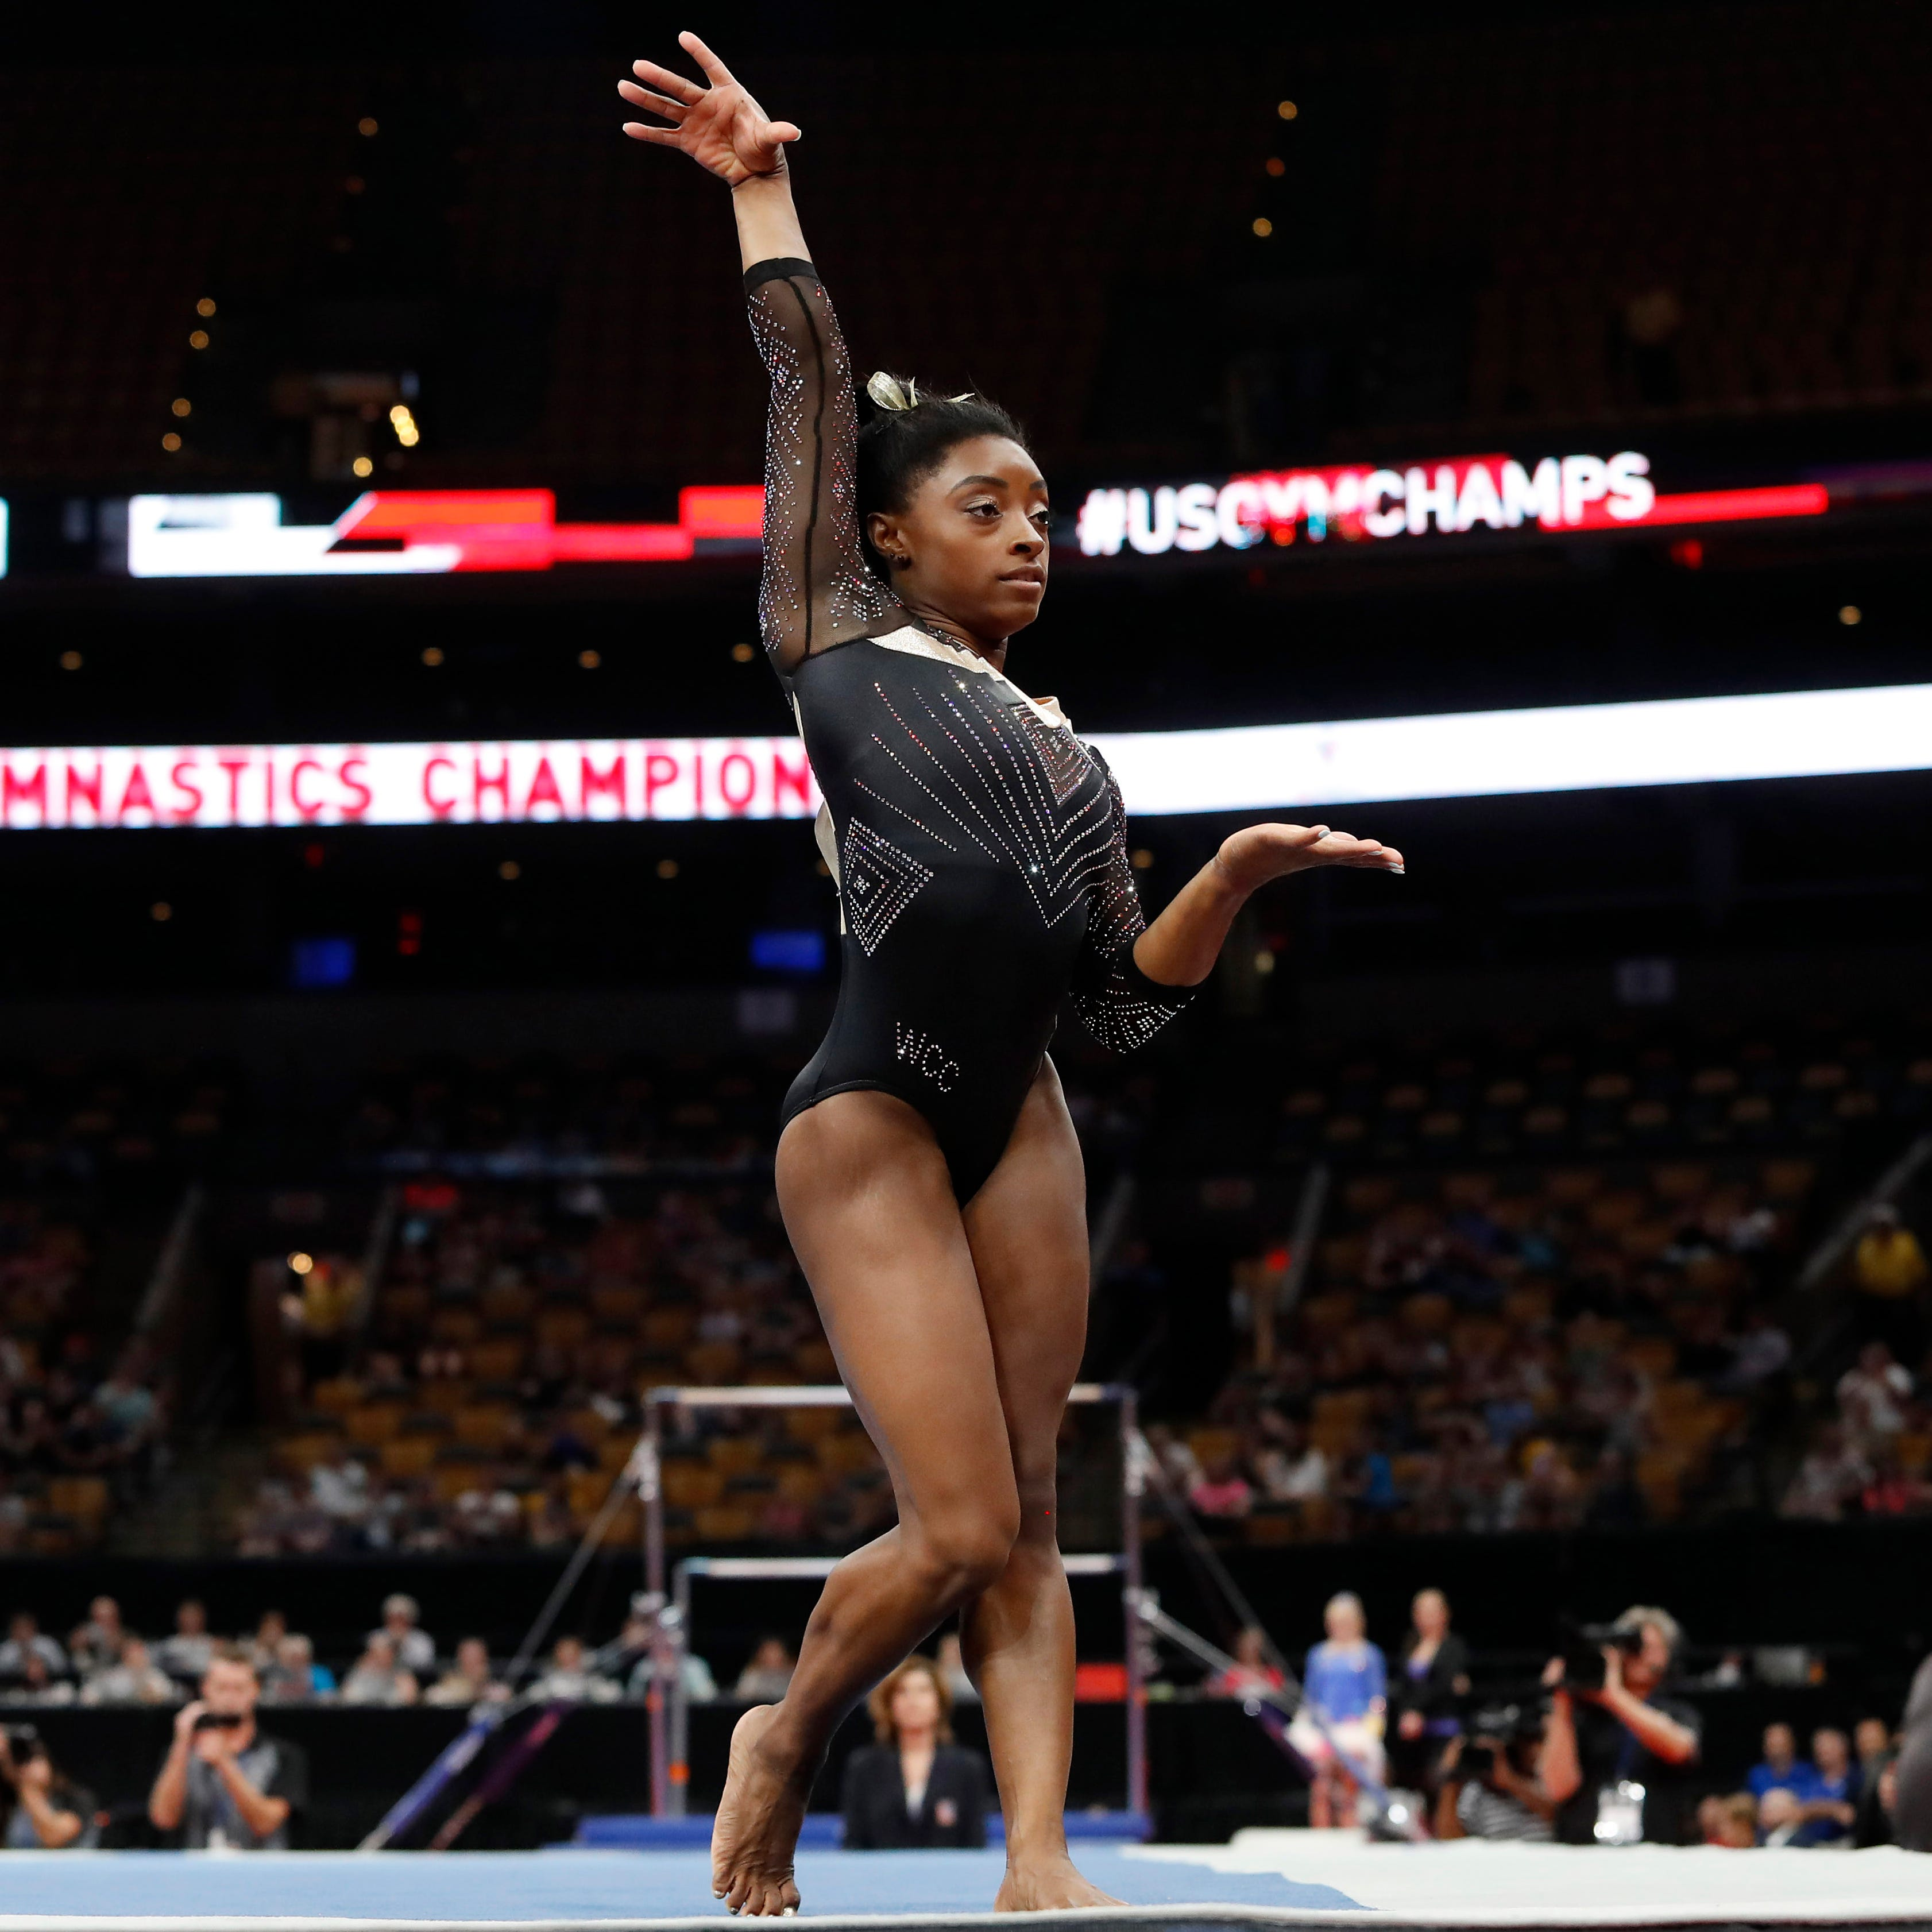 Simone Biles competes in the floor exercise during the U.S. Gymnastics Championships at TD Garden in Boston.